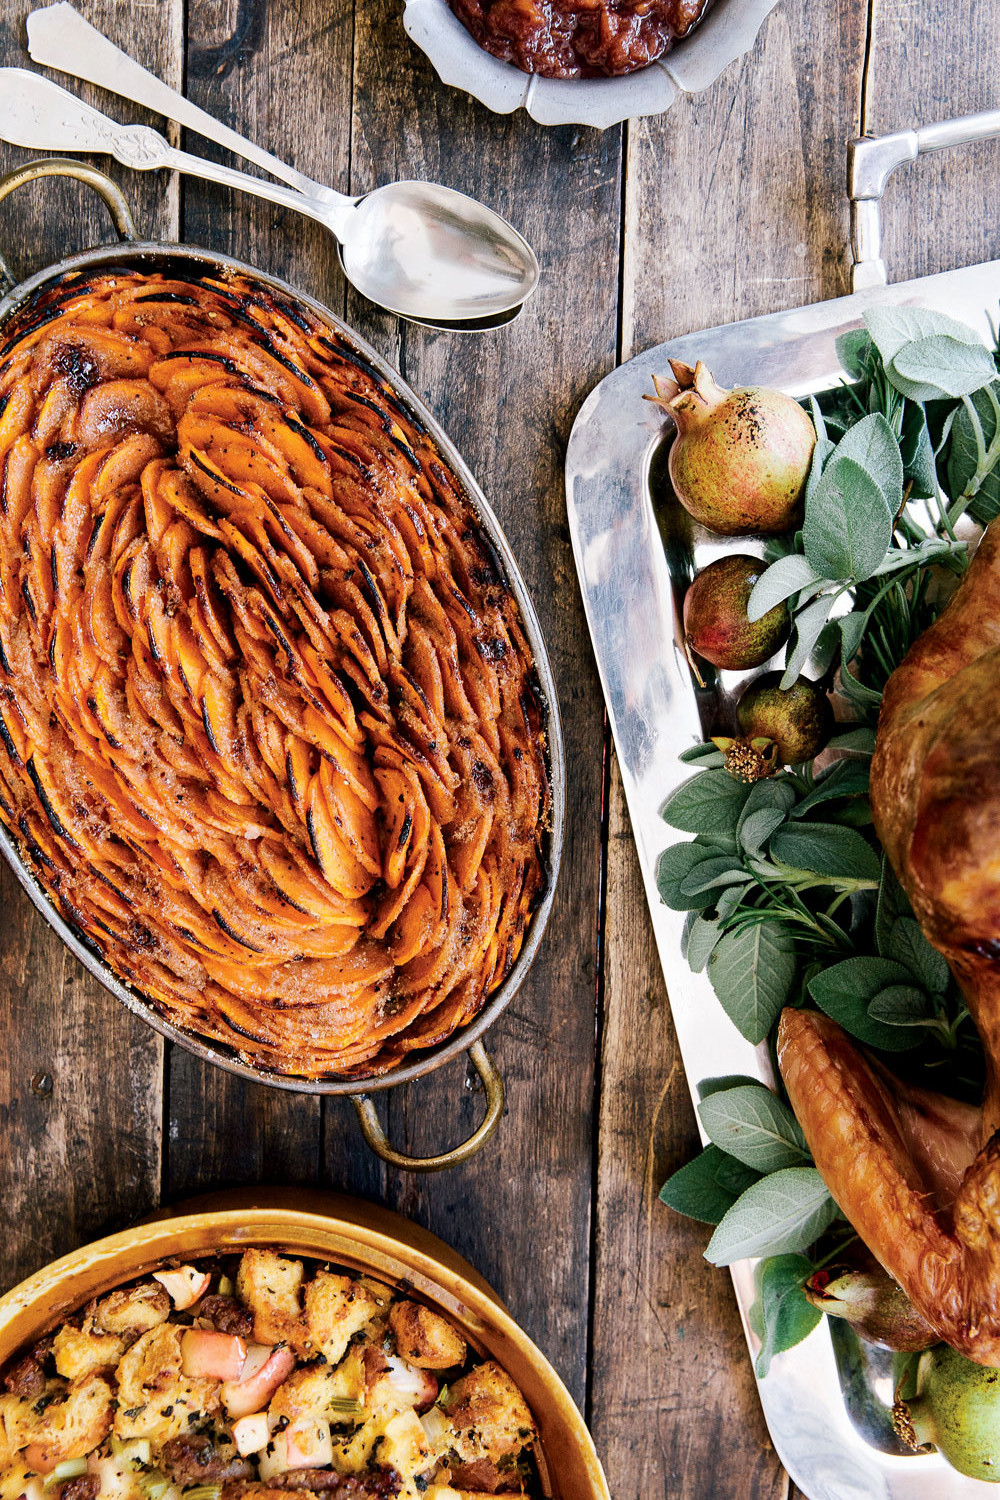 The new new england holiday kitchen 12 recipes for busy cooks it took many tries to get the crispy caramelized sweet potatoes recipe we were looking for candied sweet potatoes that were crisp not mushy forumfinder Images